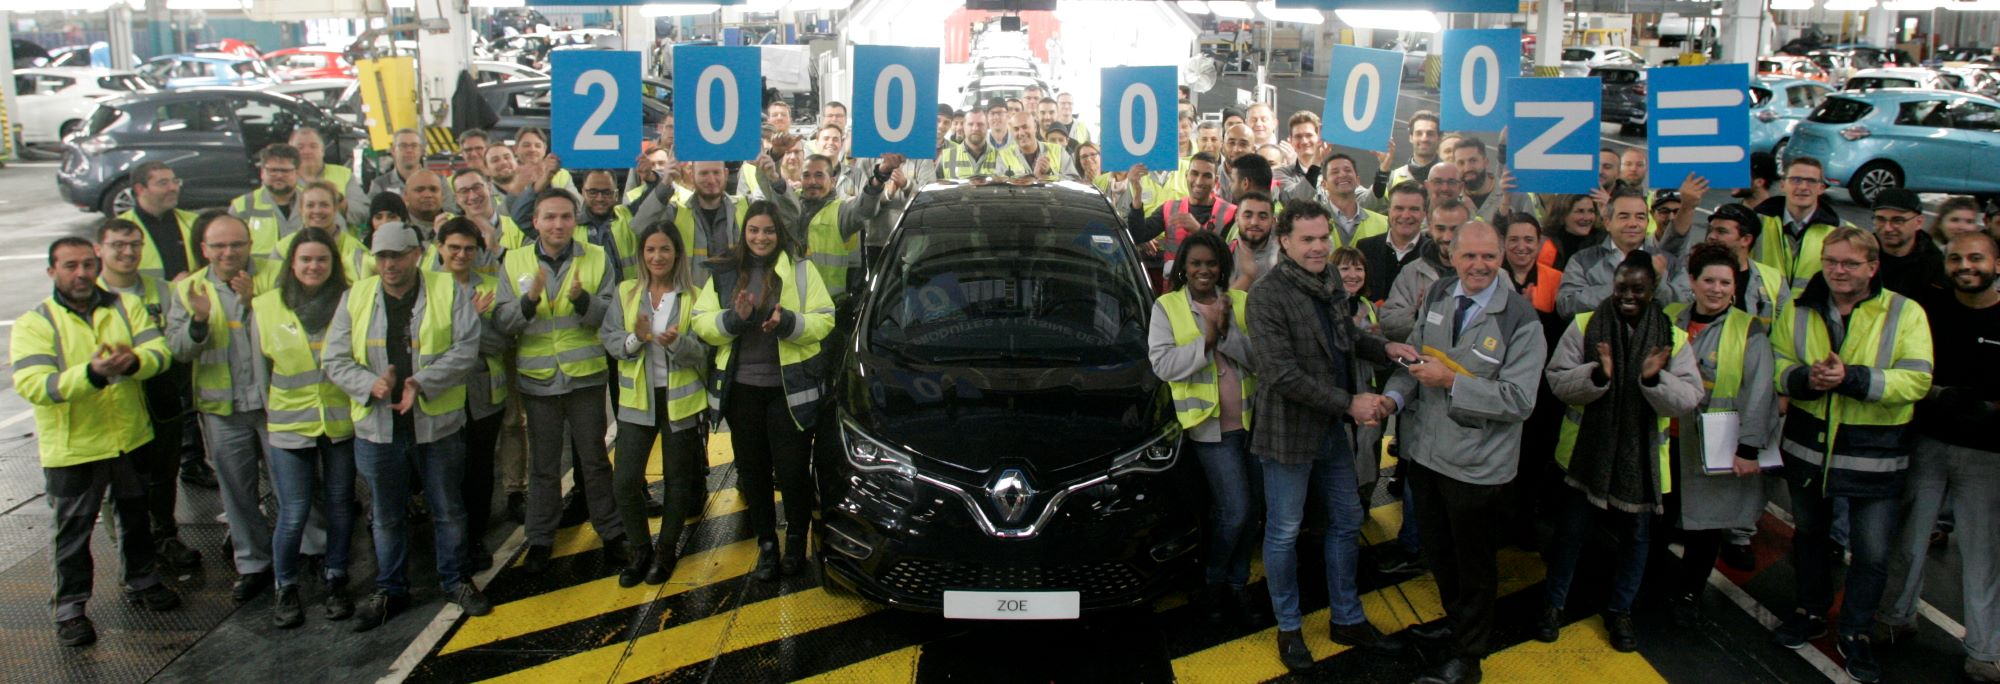 Renault's Flins factory passes new milestone: 200,000 ZOEs produced!